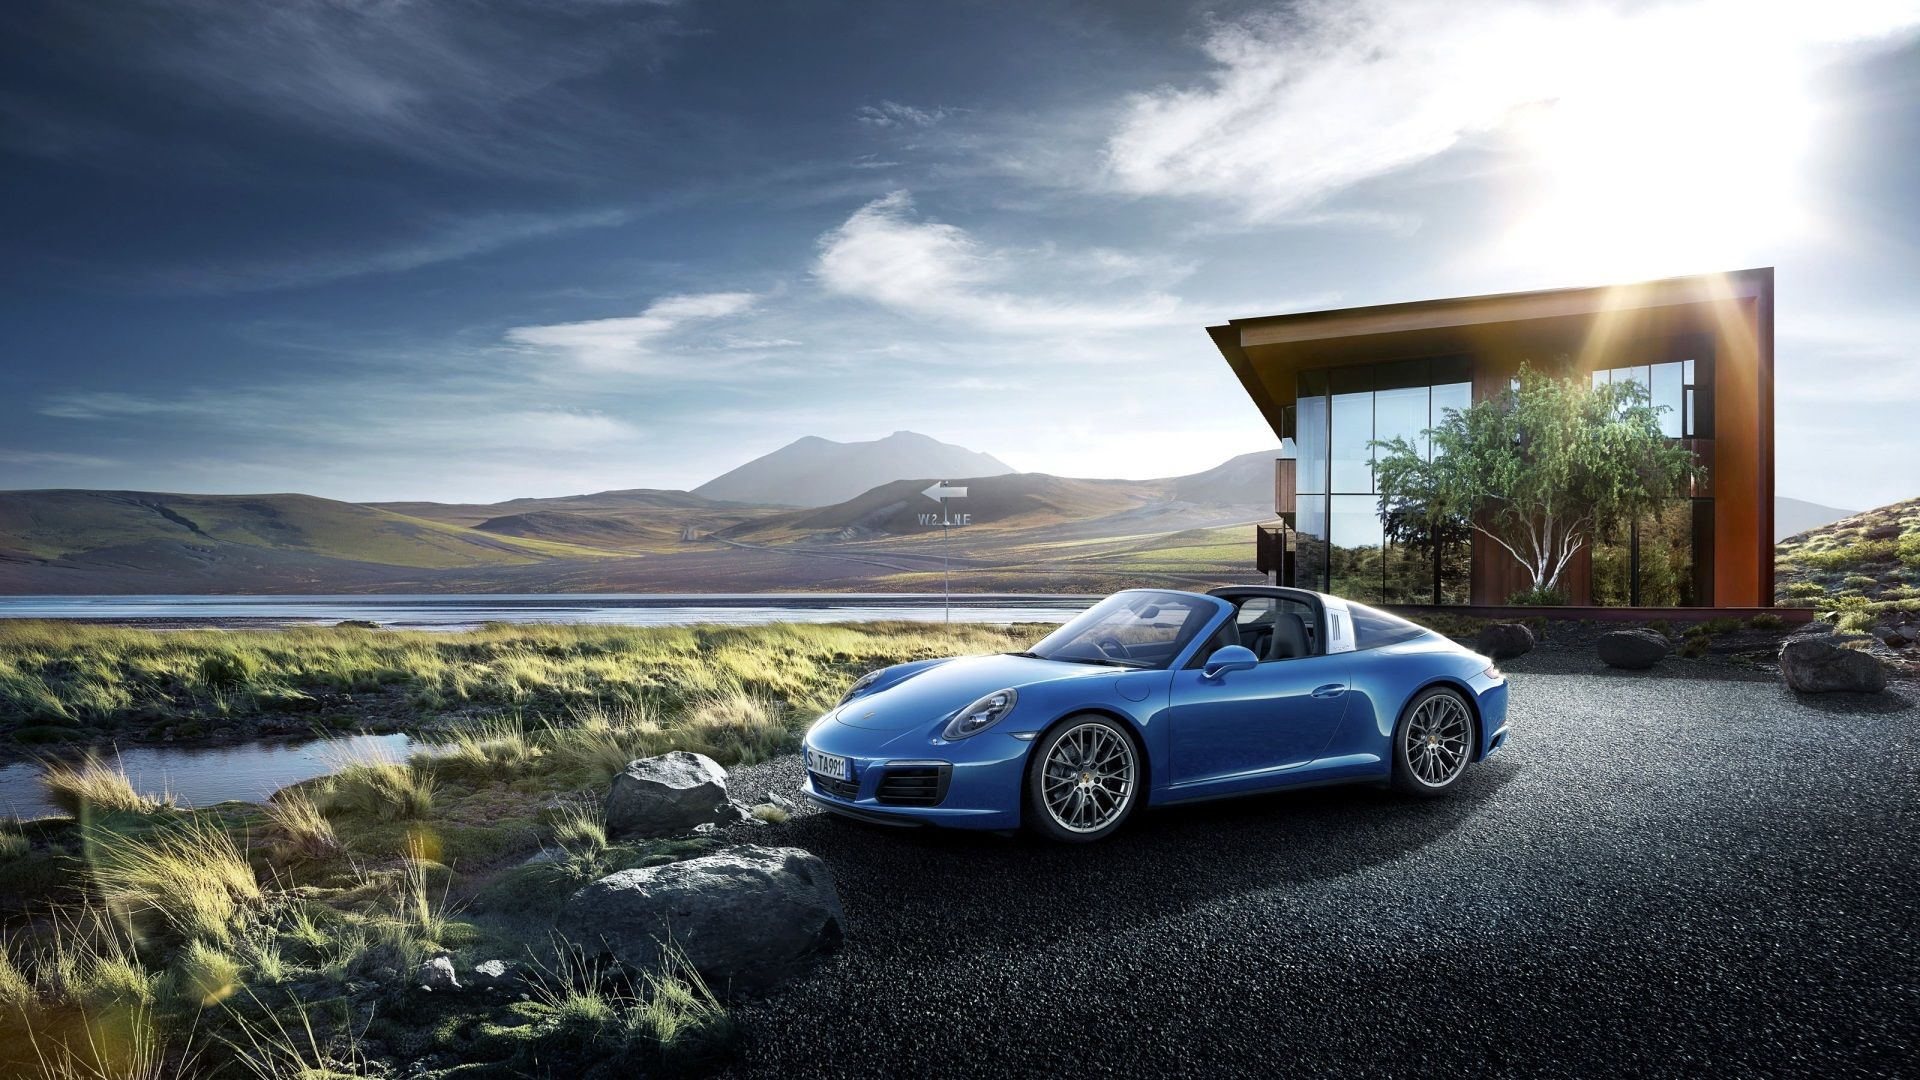 1920x1080 Porsche Cayman Download Hd Wallpaper For Desktop Porsche 911 Targa Porsche Car